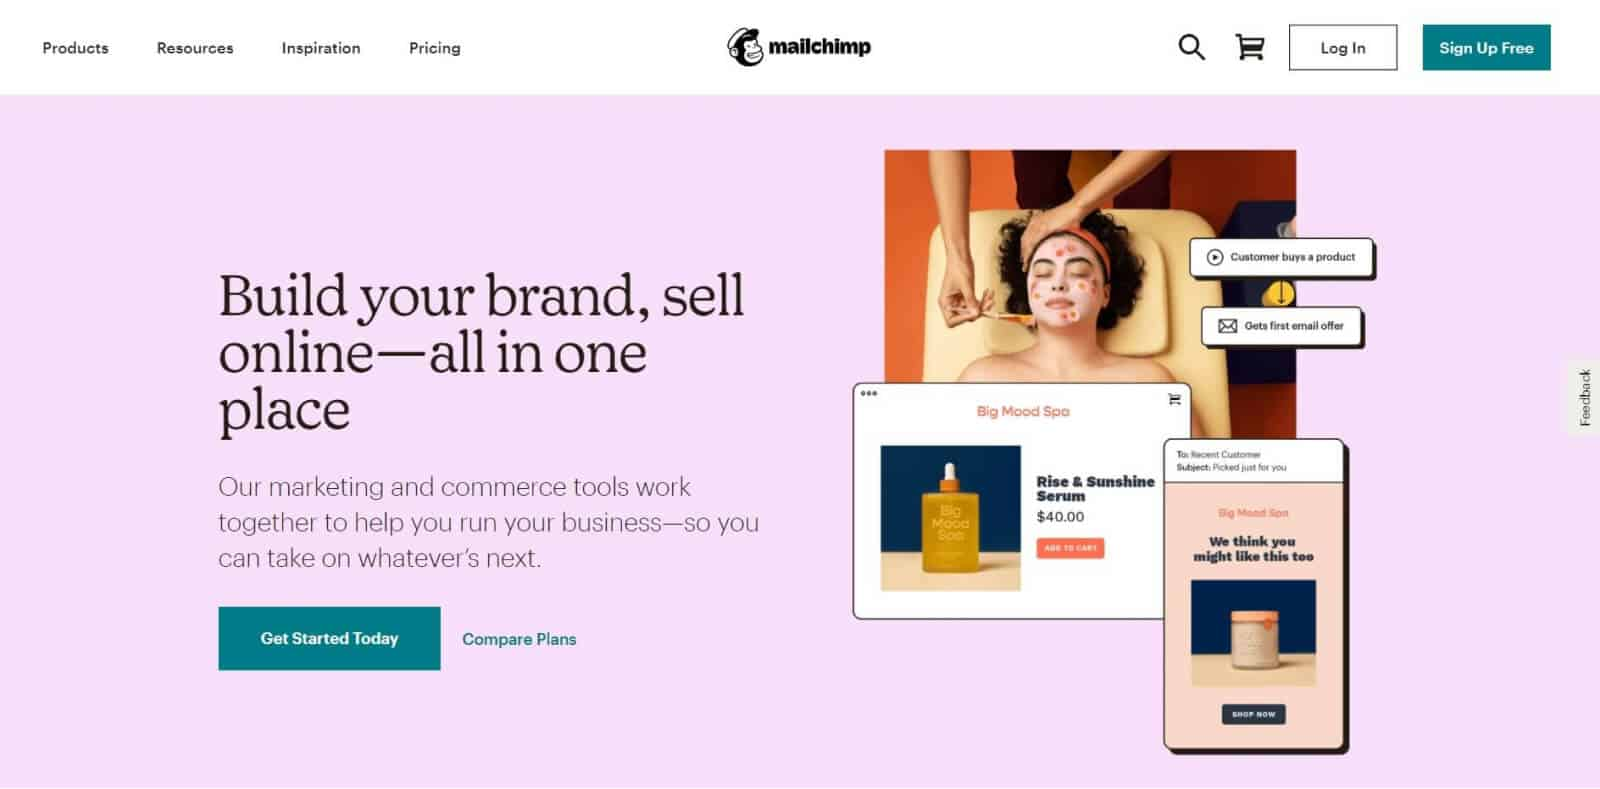 Mailchimp is one of the biggest players in the email marketing space